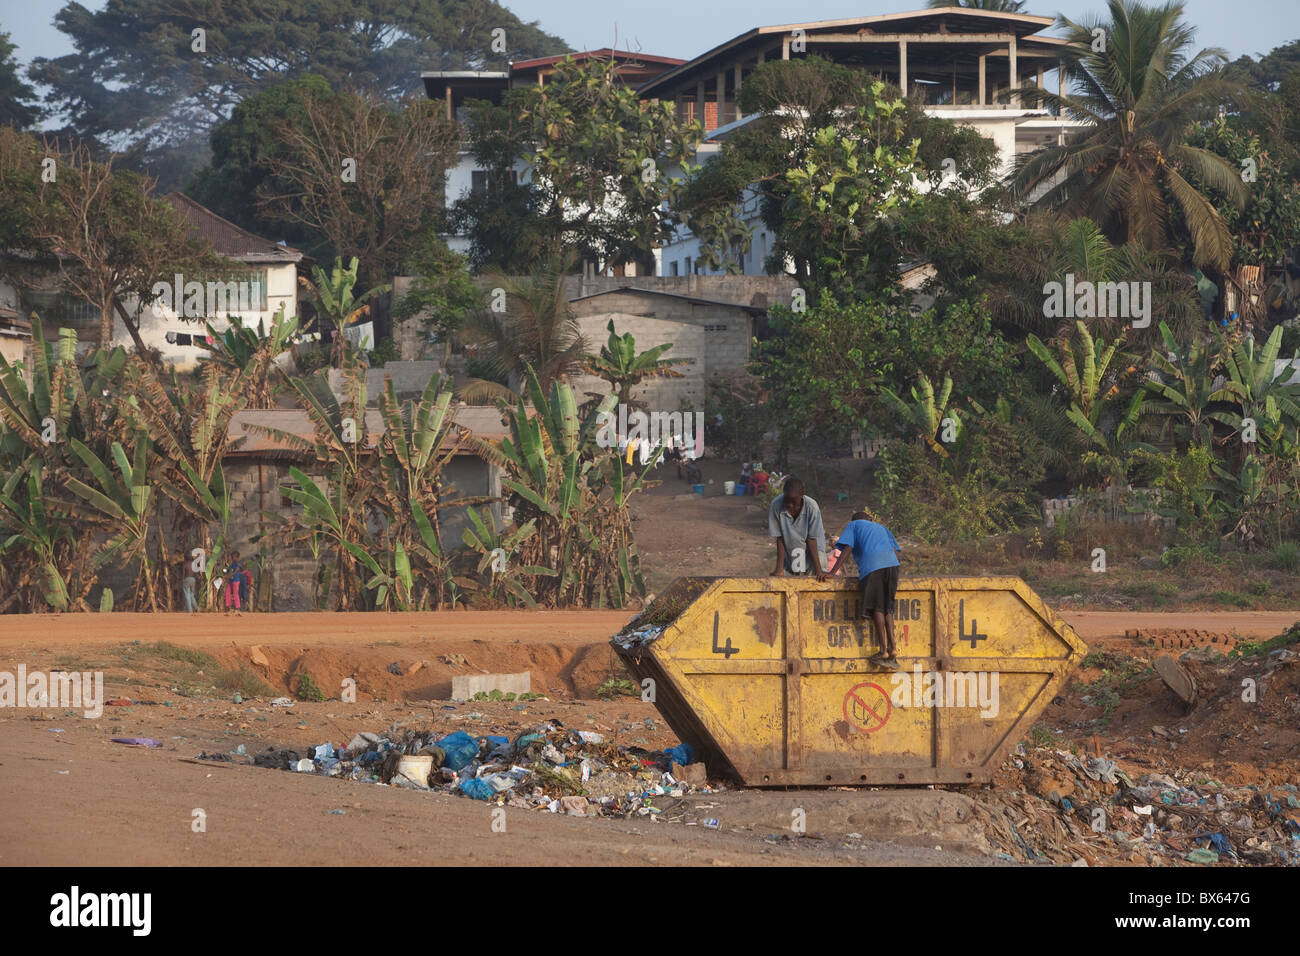 city scene along oceanfront showing children digging through trash